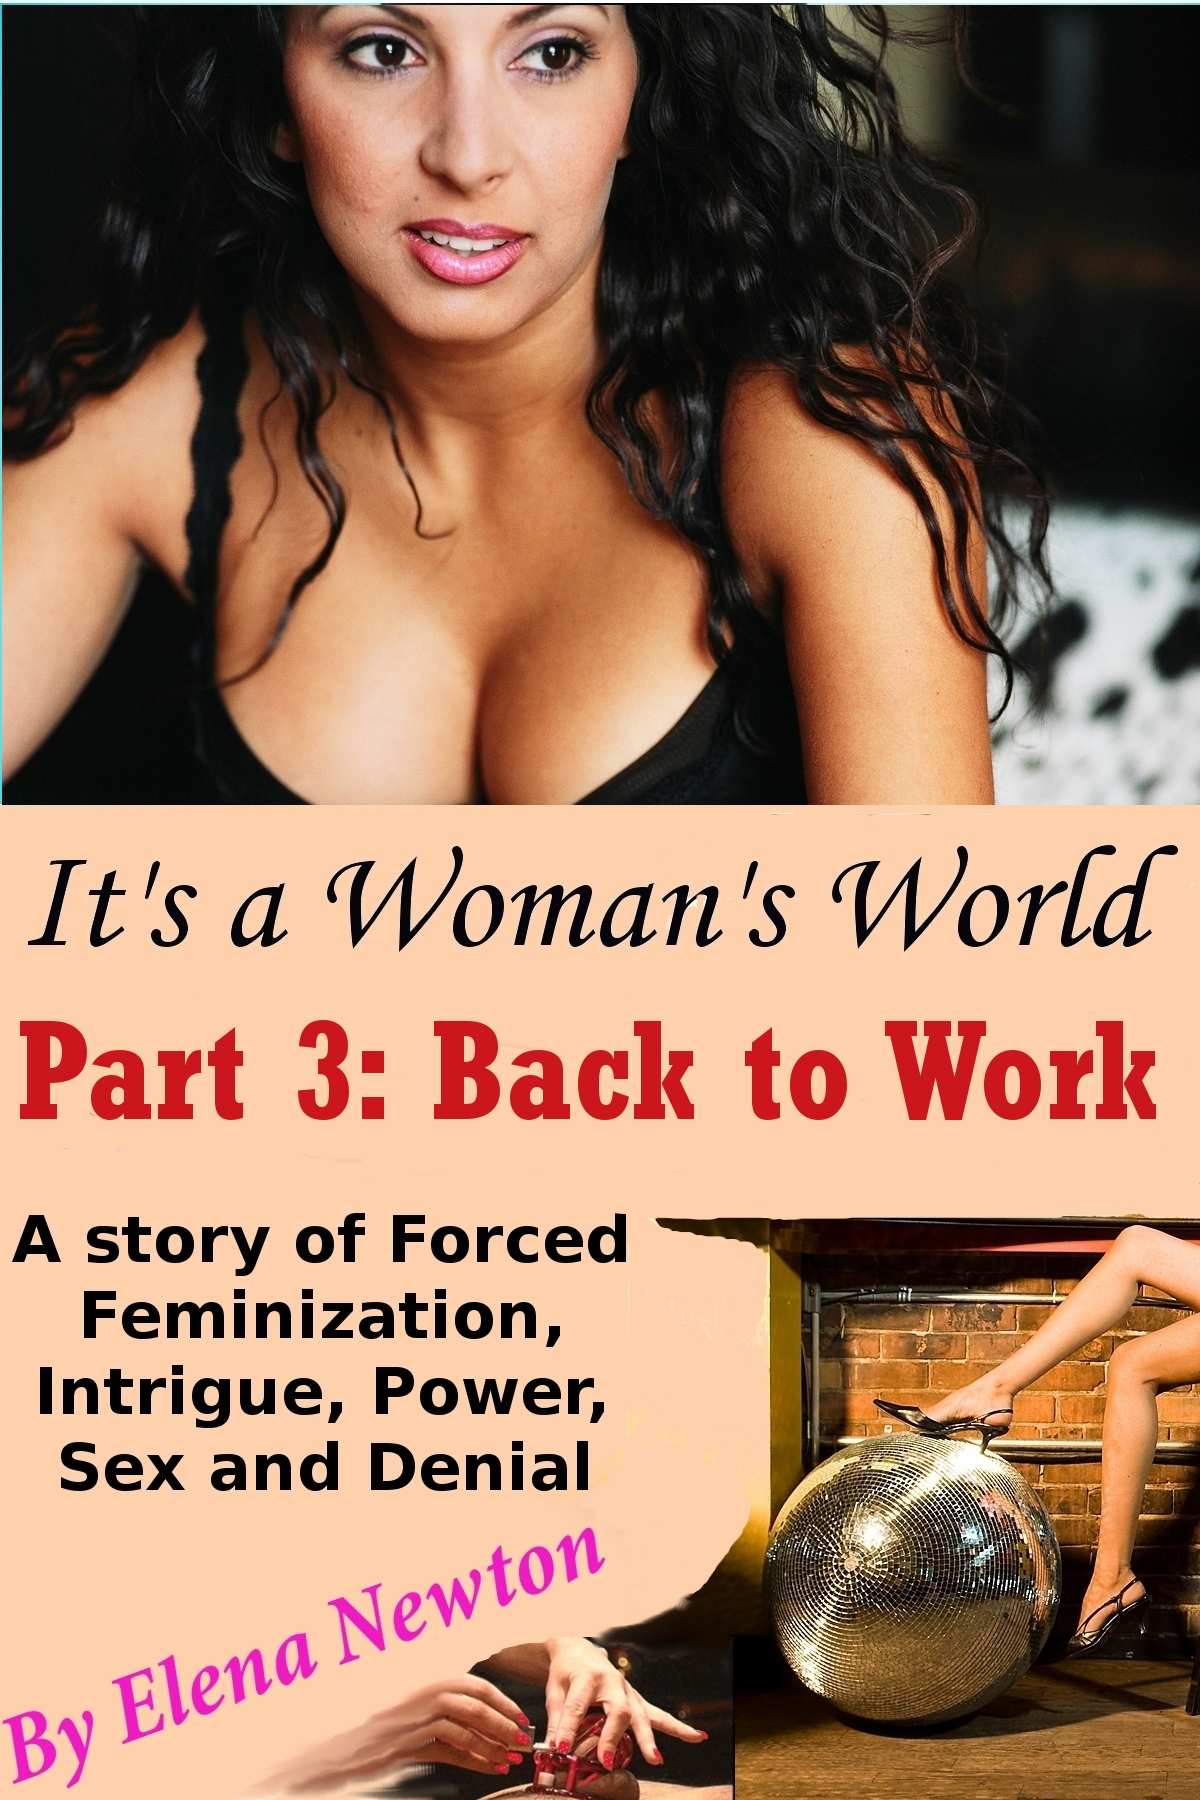 It's a Woman's World: Back to Work